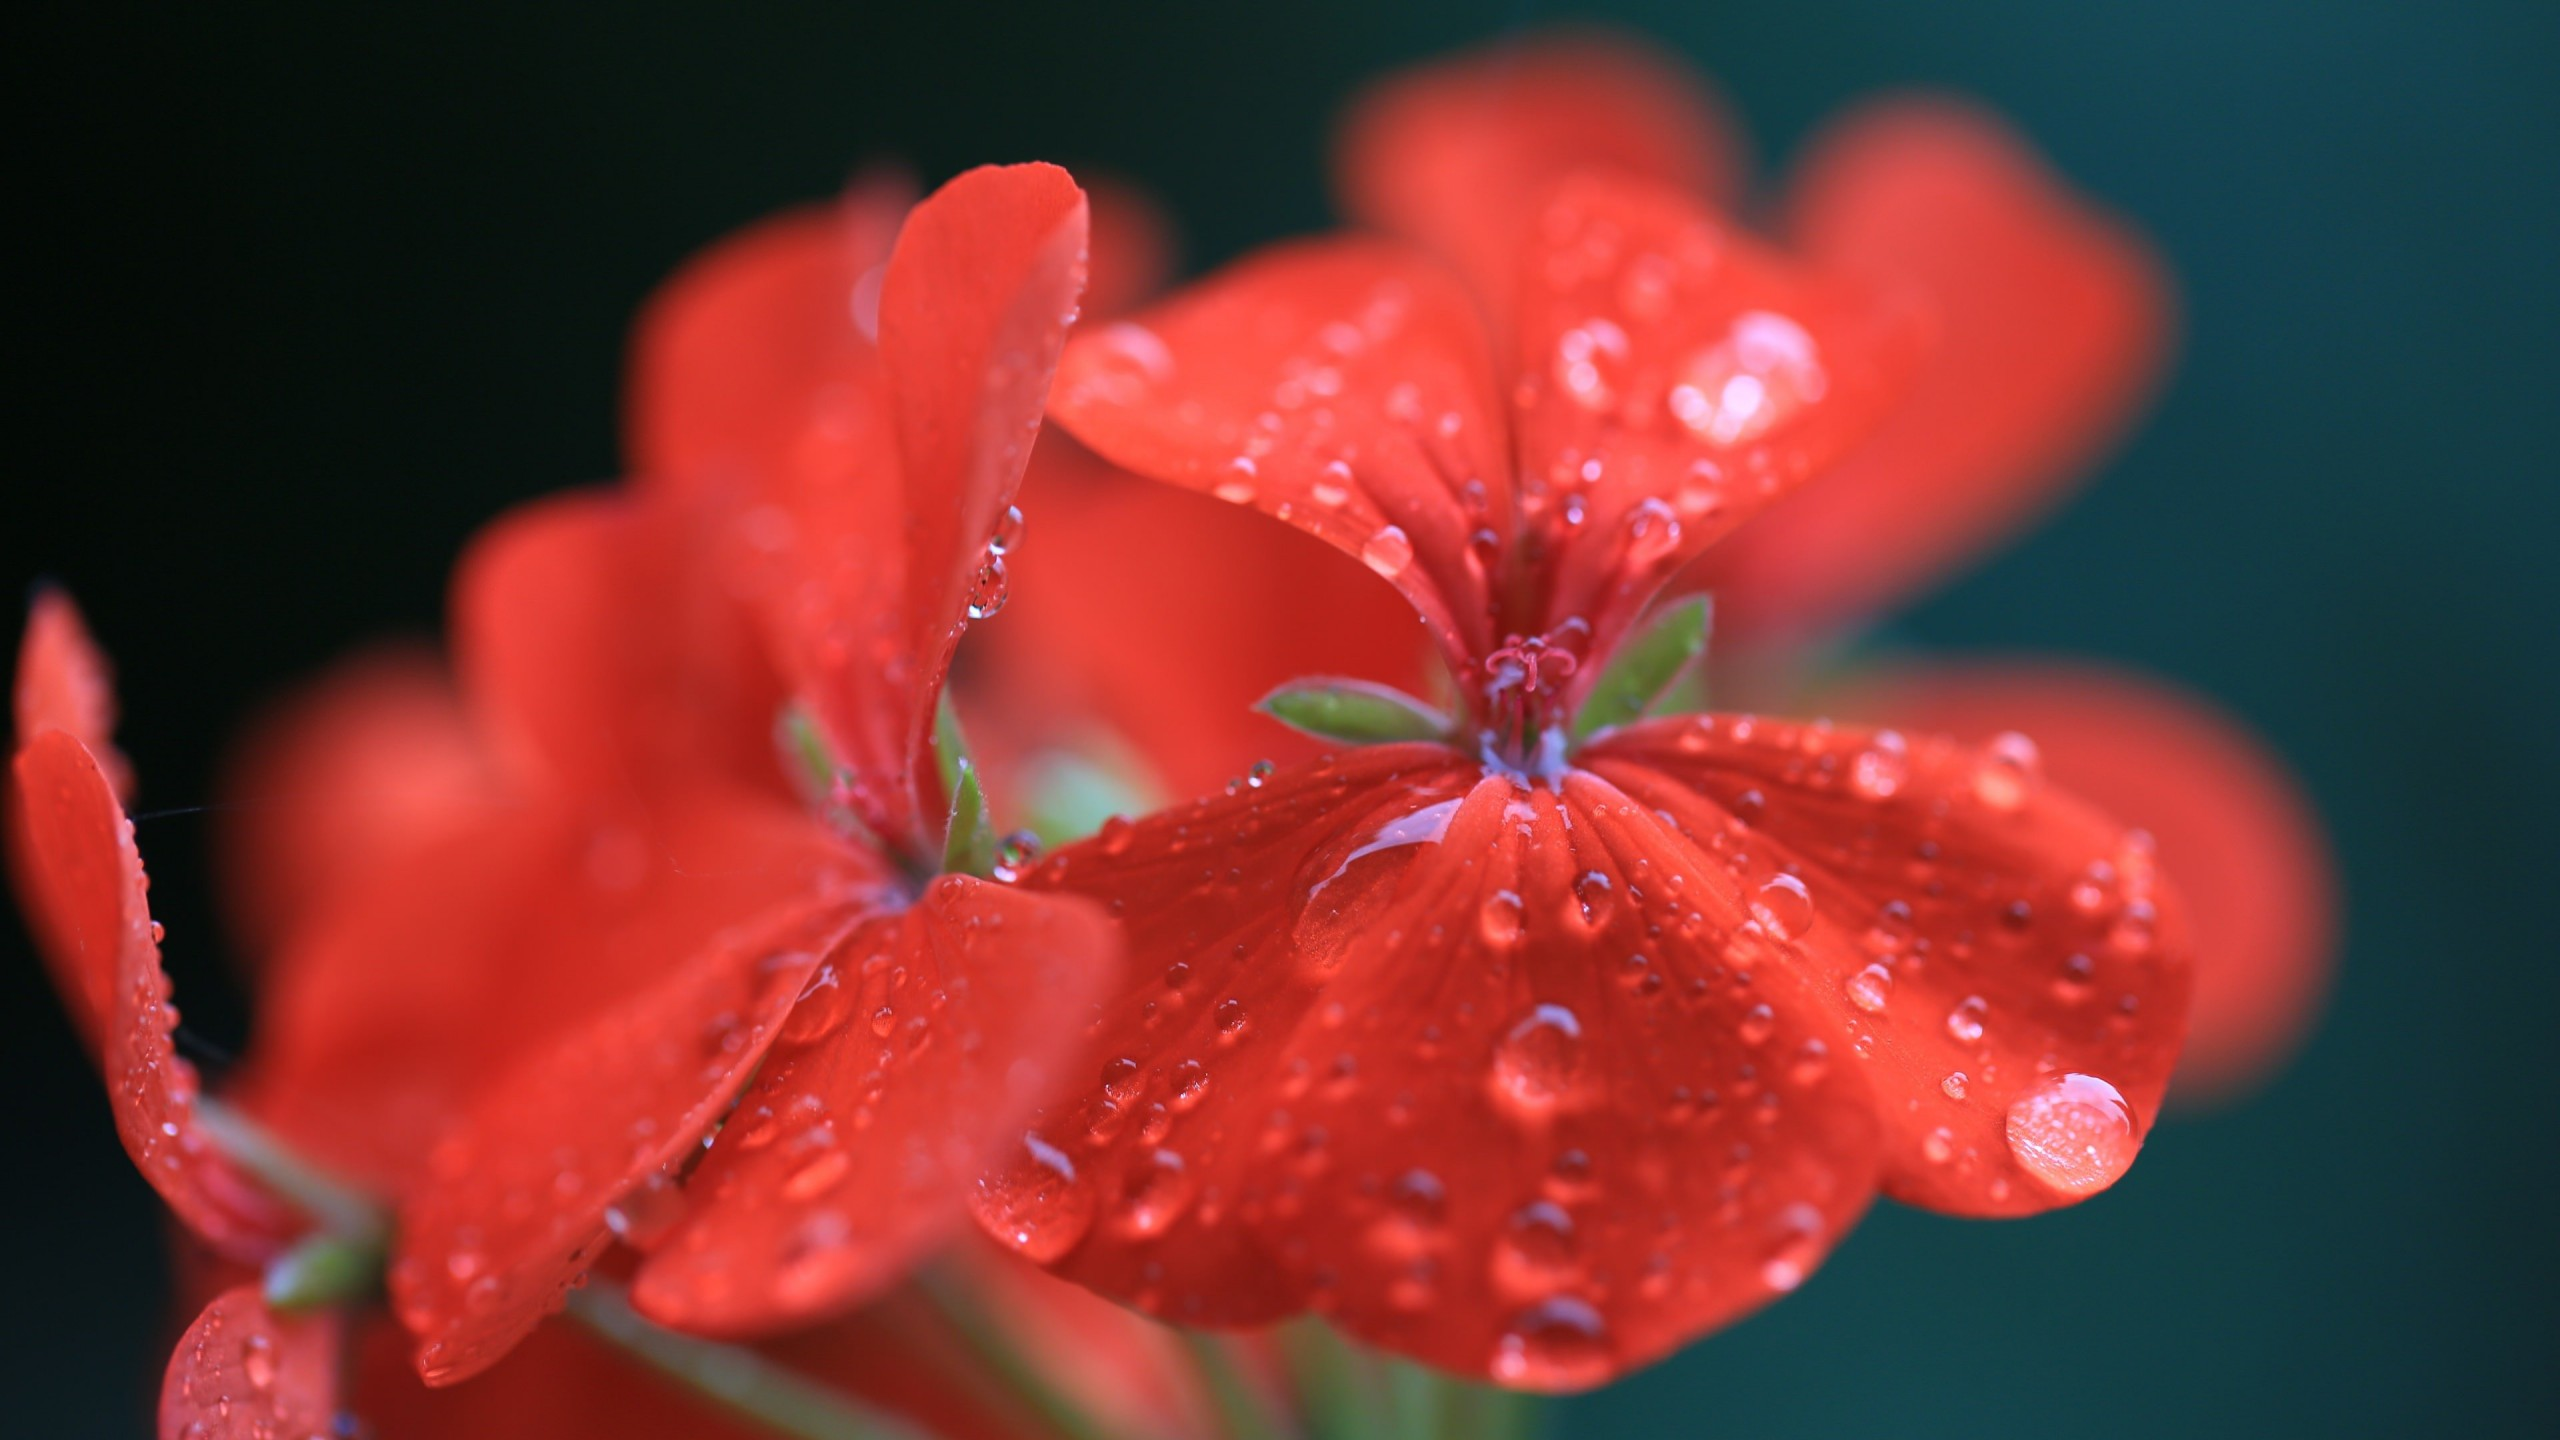 Red Geranium Wallpaper for Desktop 2560x1440